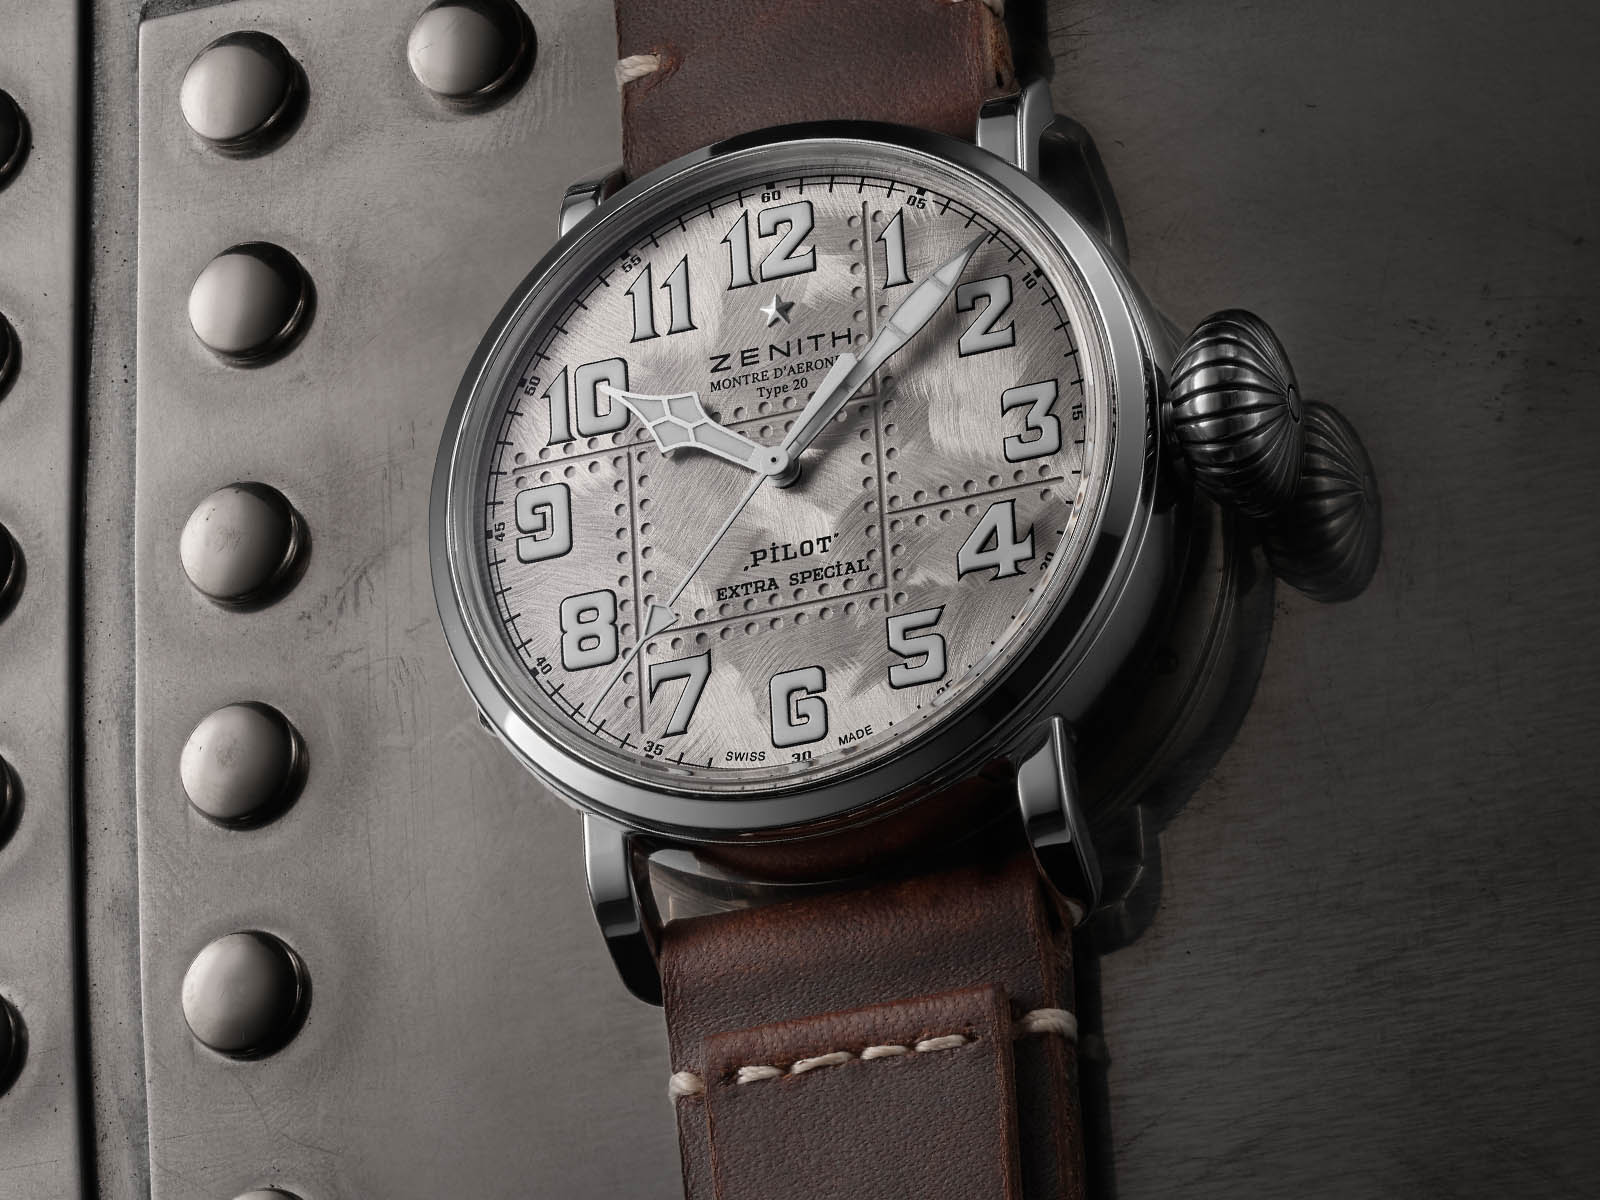 05-2430-679-17-c902-zenith-pilot-type-20-extra-special-silver-2.jpg